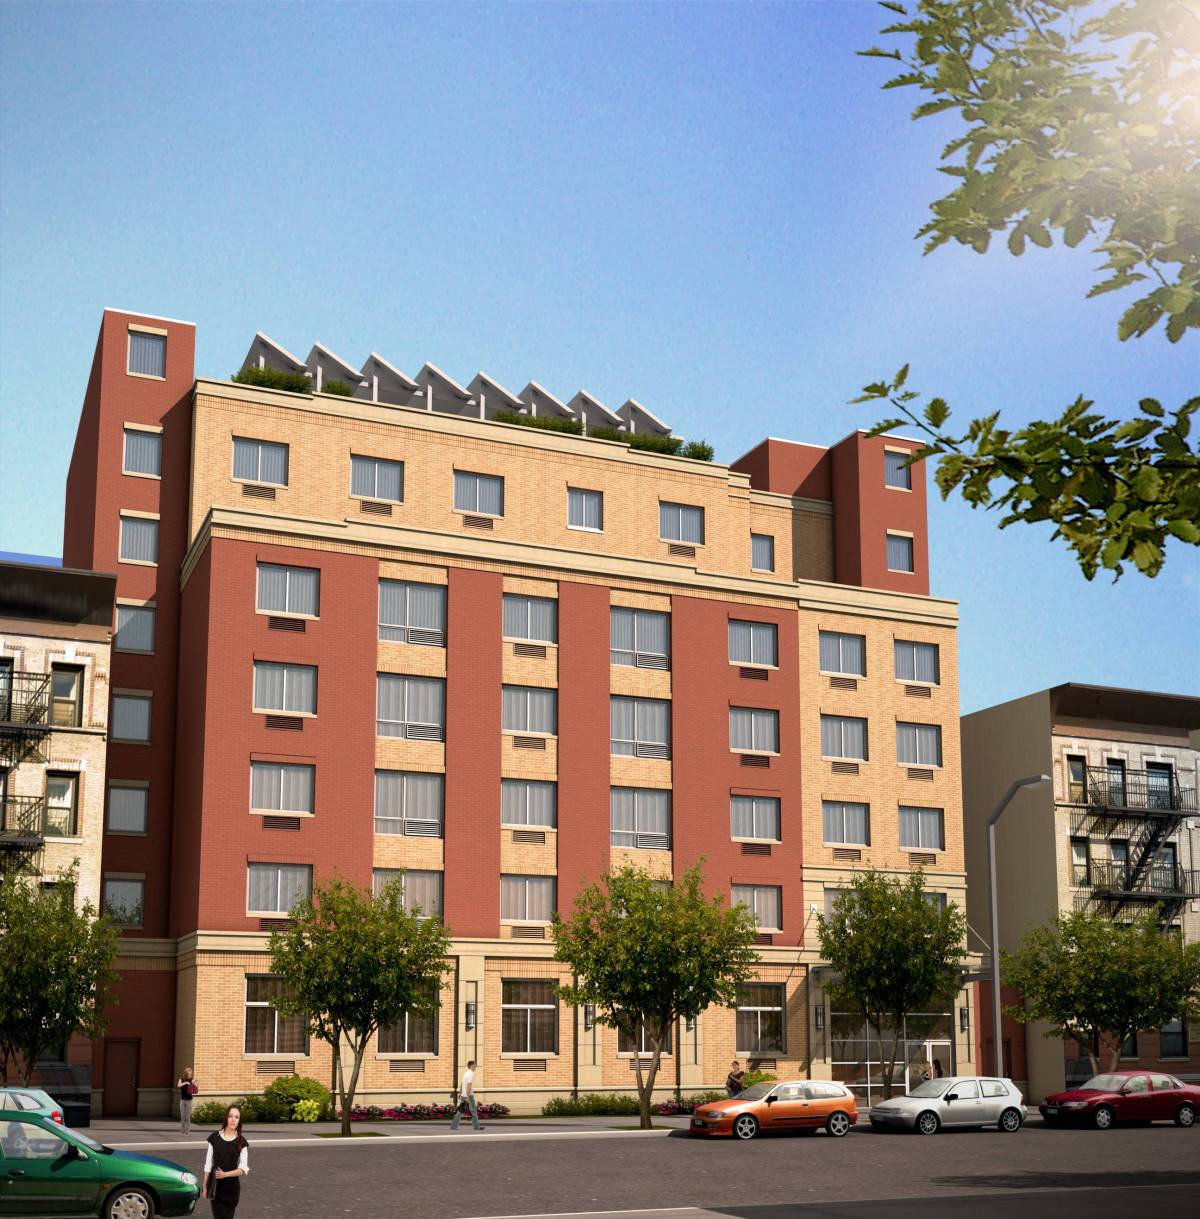 Seventy units of affordable housing may be coming to East New York